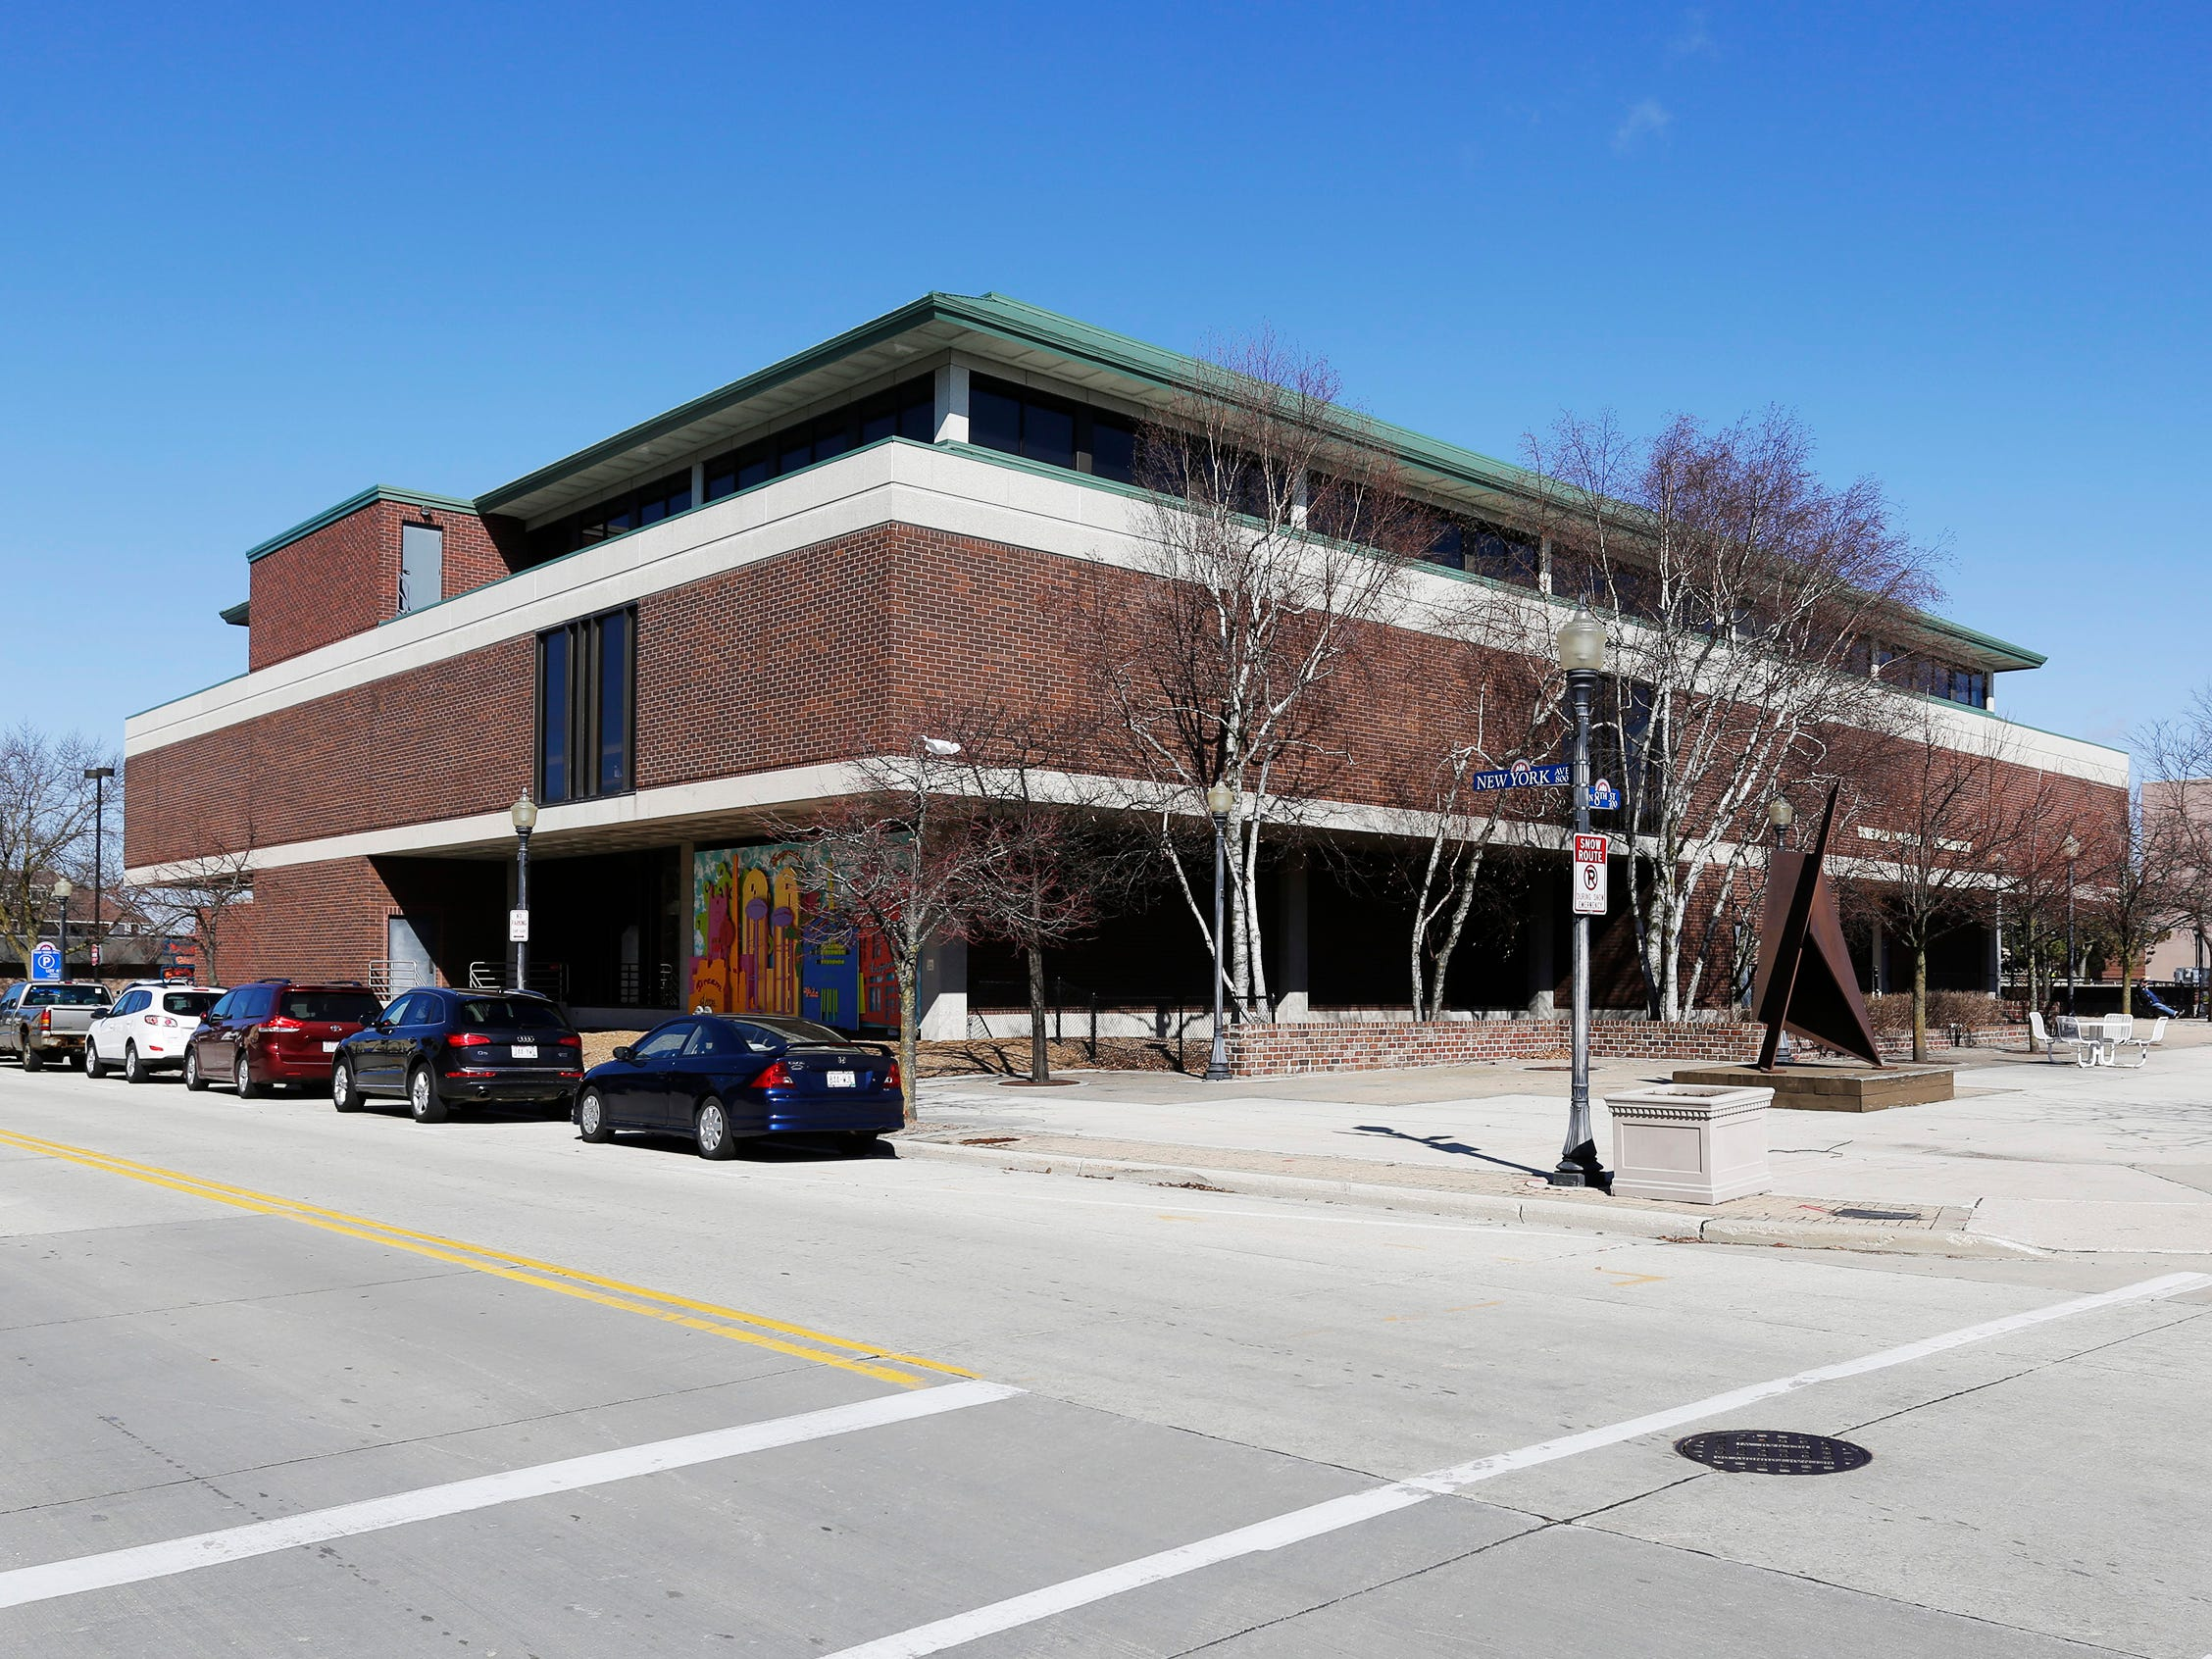 A view of the southeast view of Mead Public Library, Tuesday, April 9, 2019, in Sheboygan, Wis.